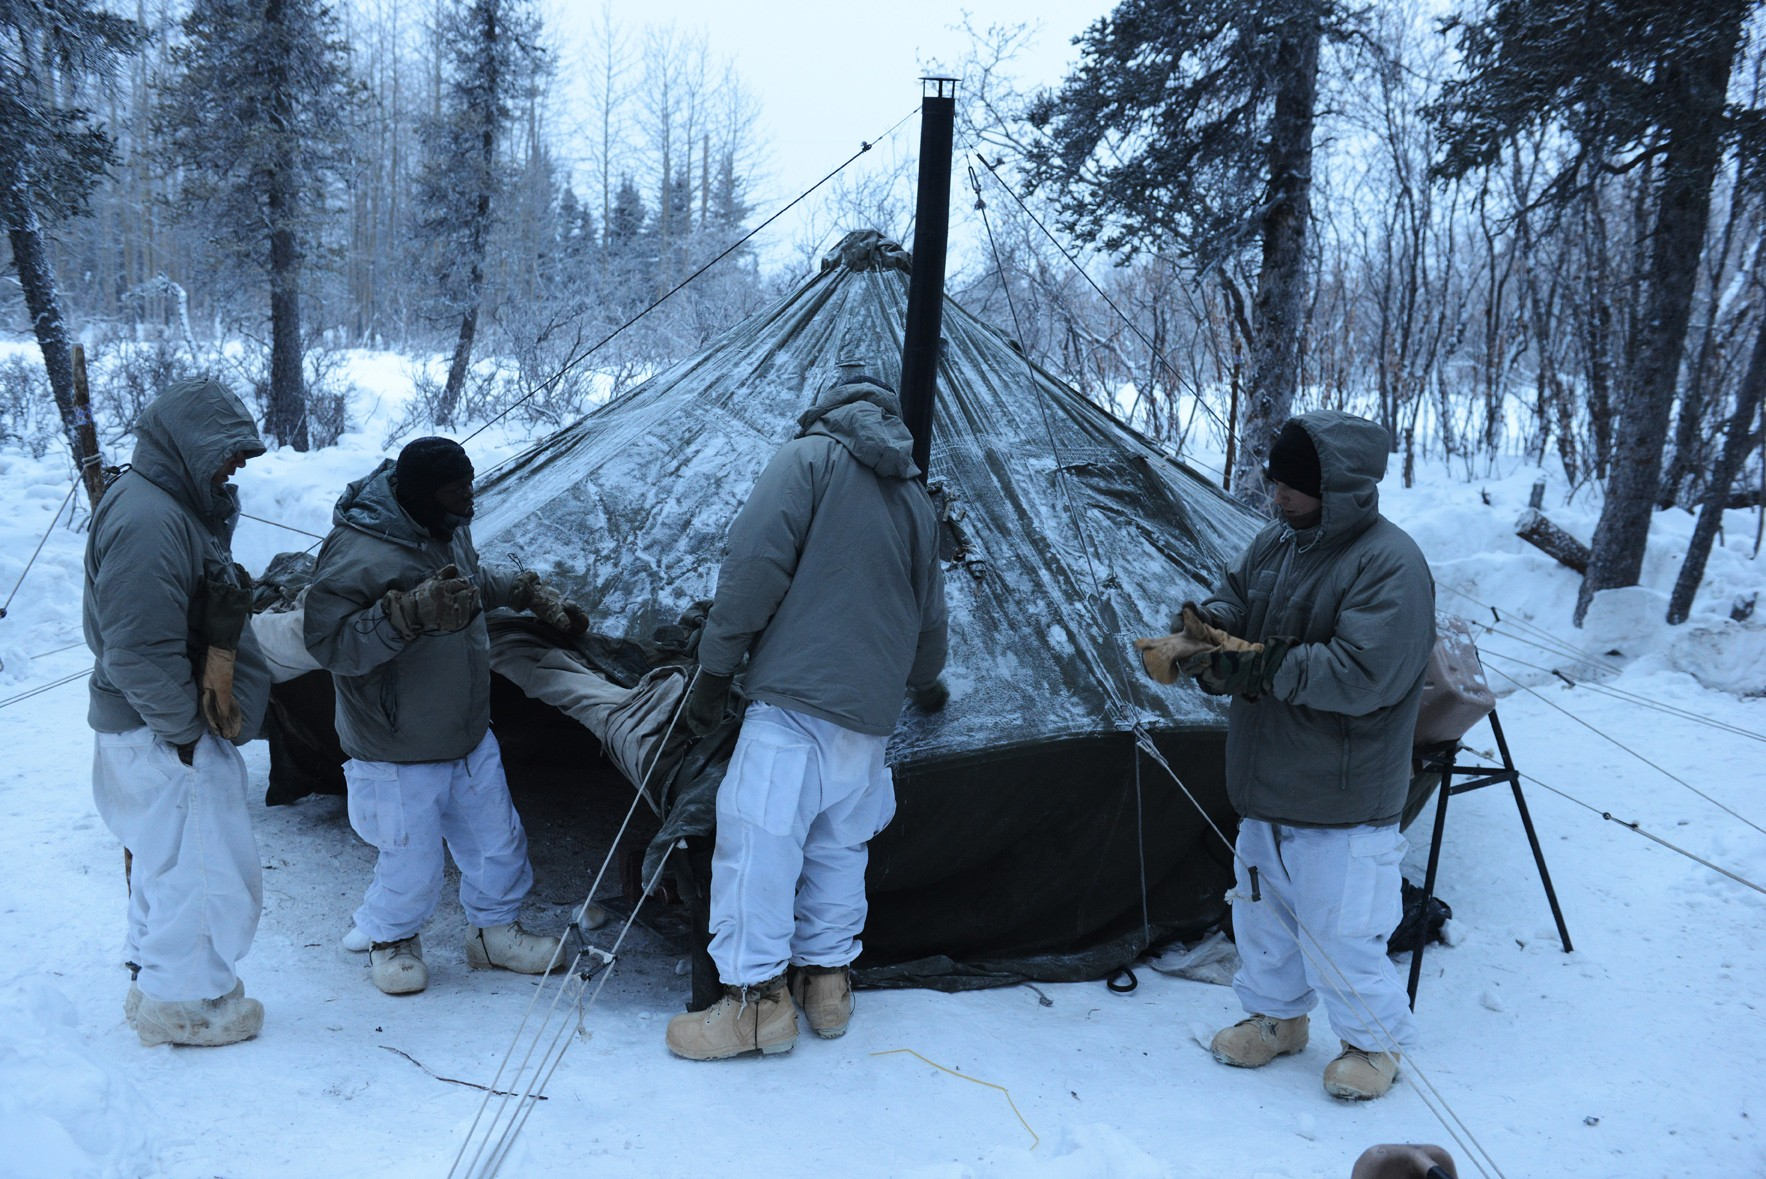 ... set up their 10-man Arctic Tent in the dark. (Photo Credit David Vergun) ... & Soldiers learn to stay warm thrive in arctic conditions | Article ...